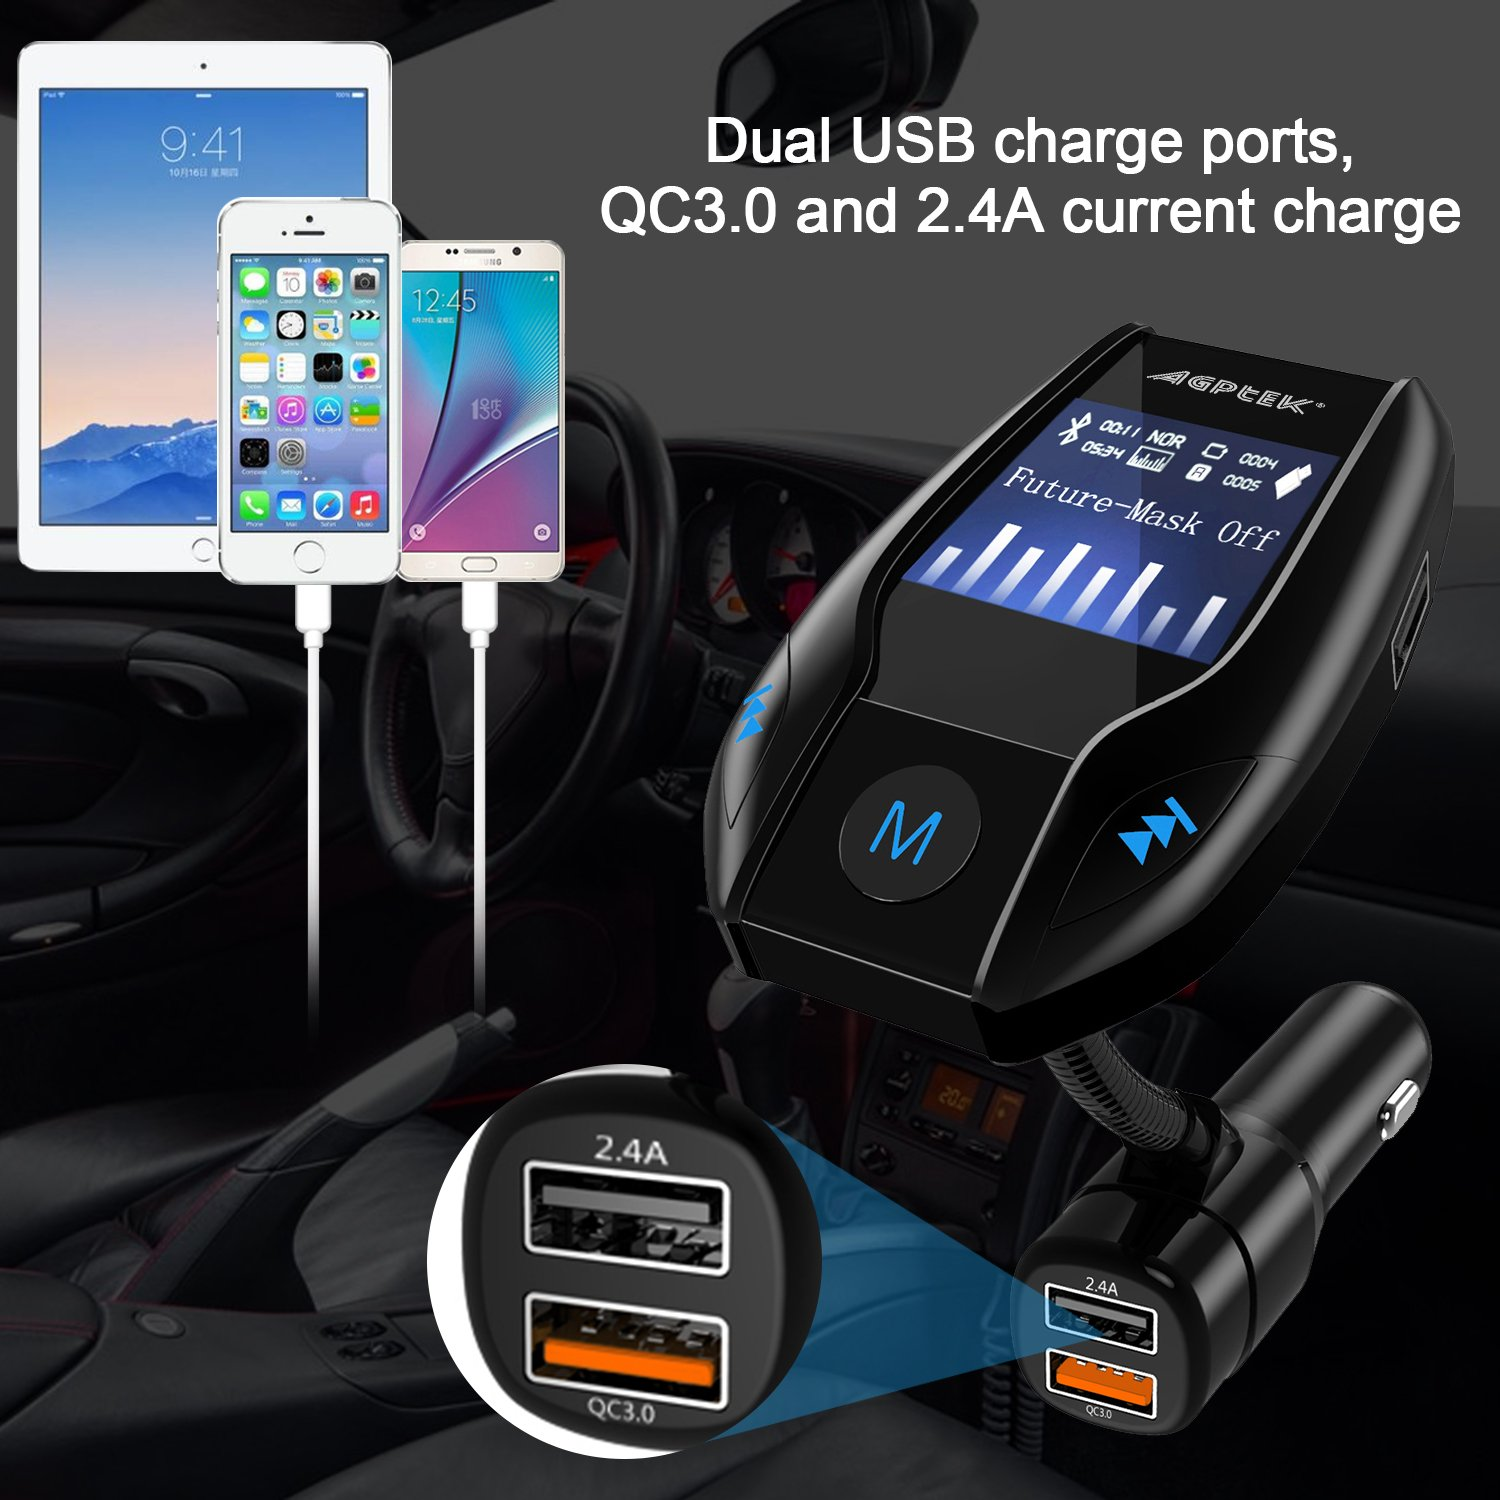 Bluetooth FM Transmitter for Car with Quick Charge 3.0 Wireless In-Car Radio Transmitter Adapter Support AUX Input/TF Card/USB Flash Drive/Hands-Free Calling by MYPIN (Image #7)